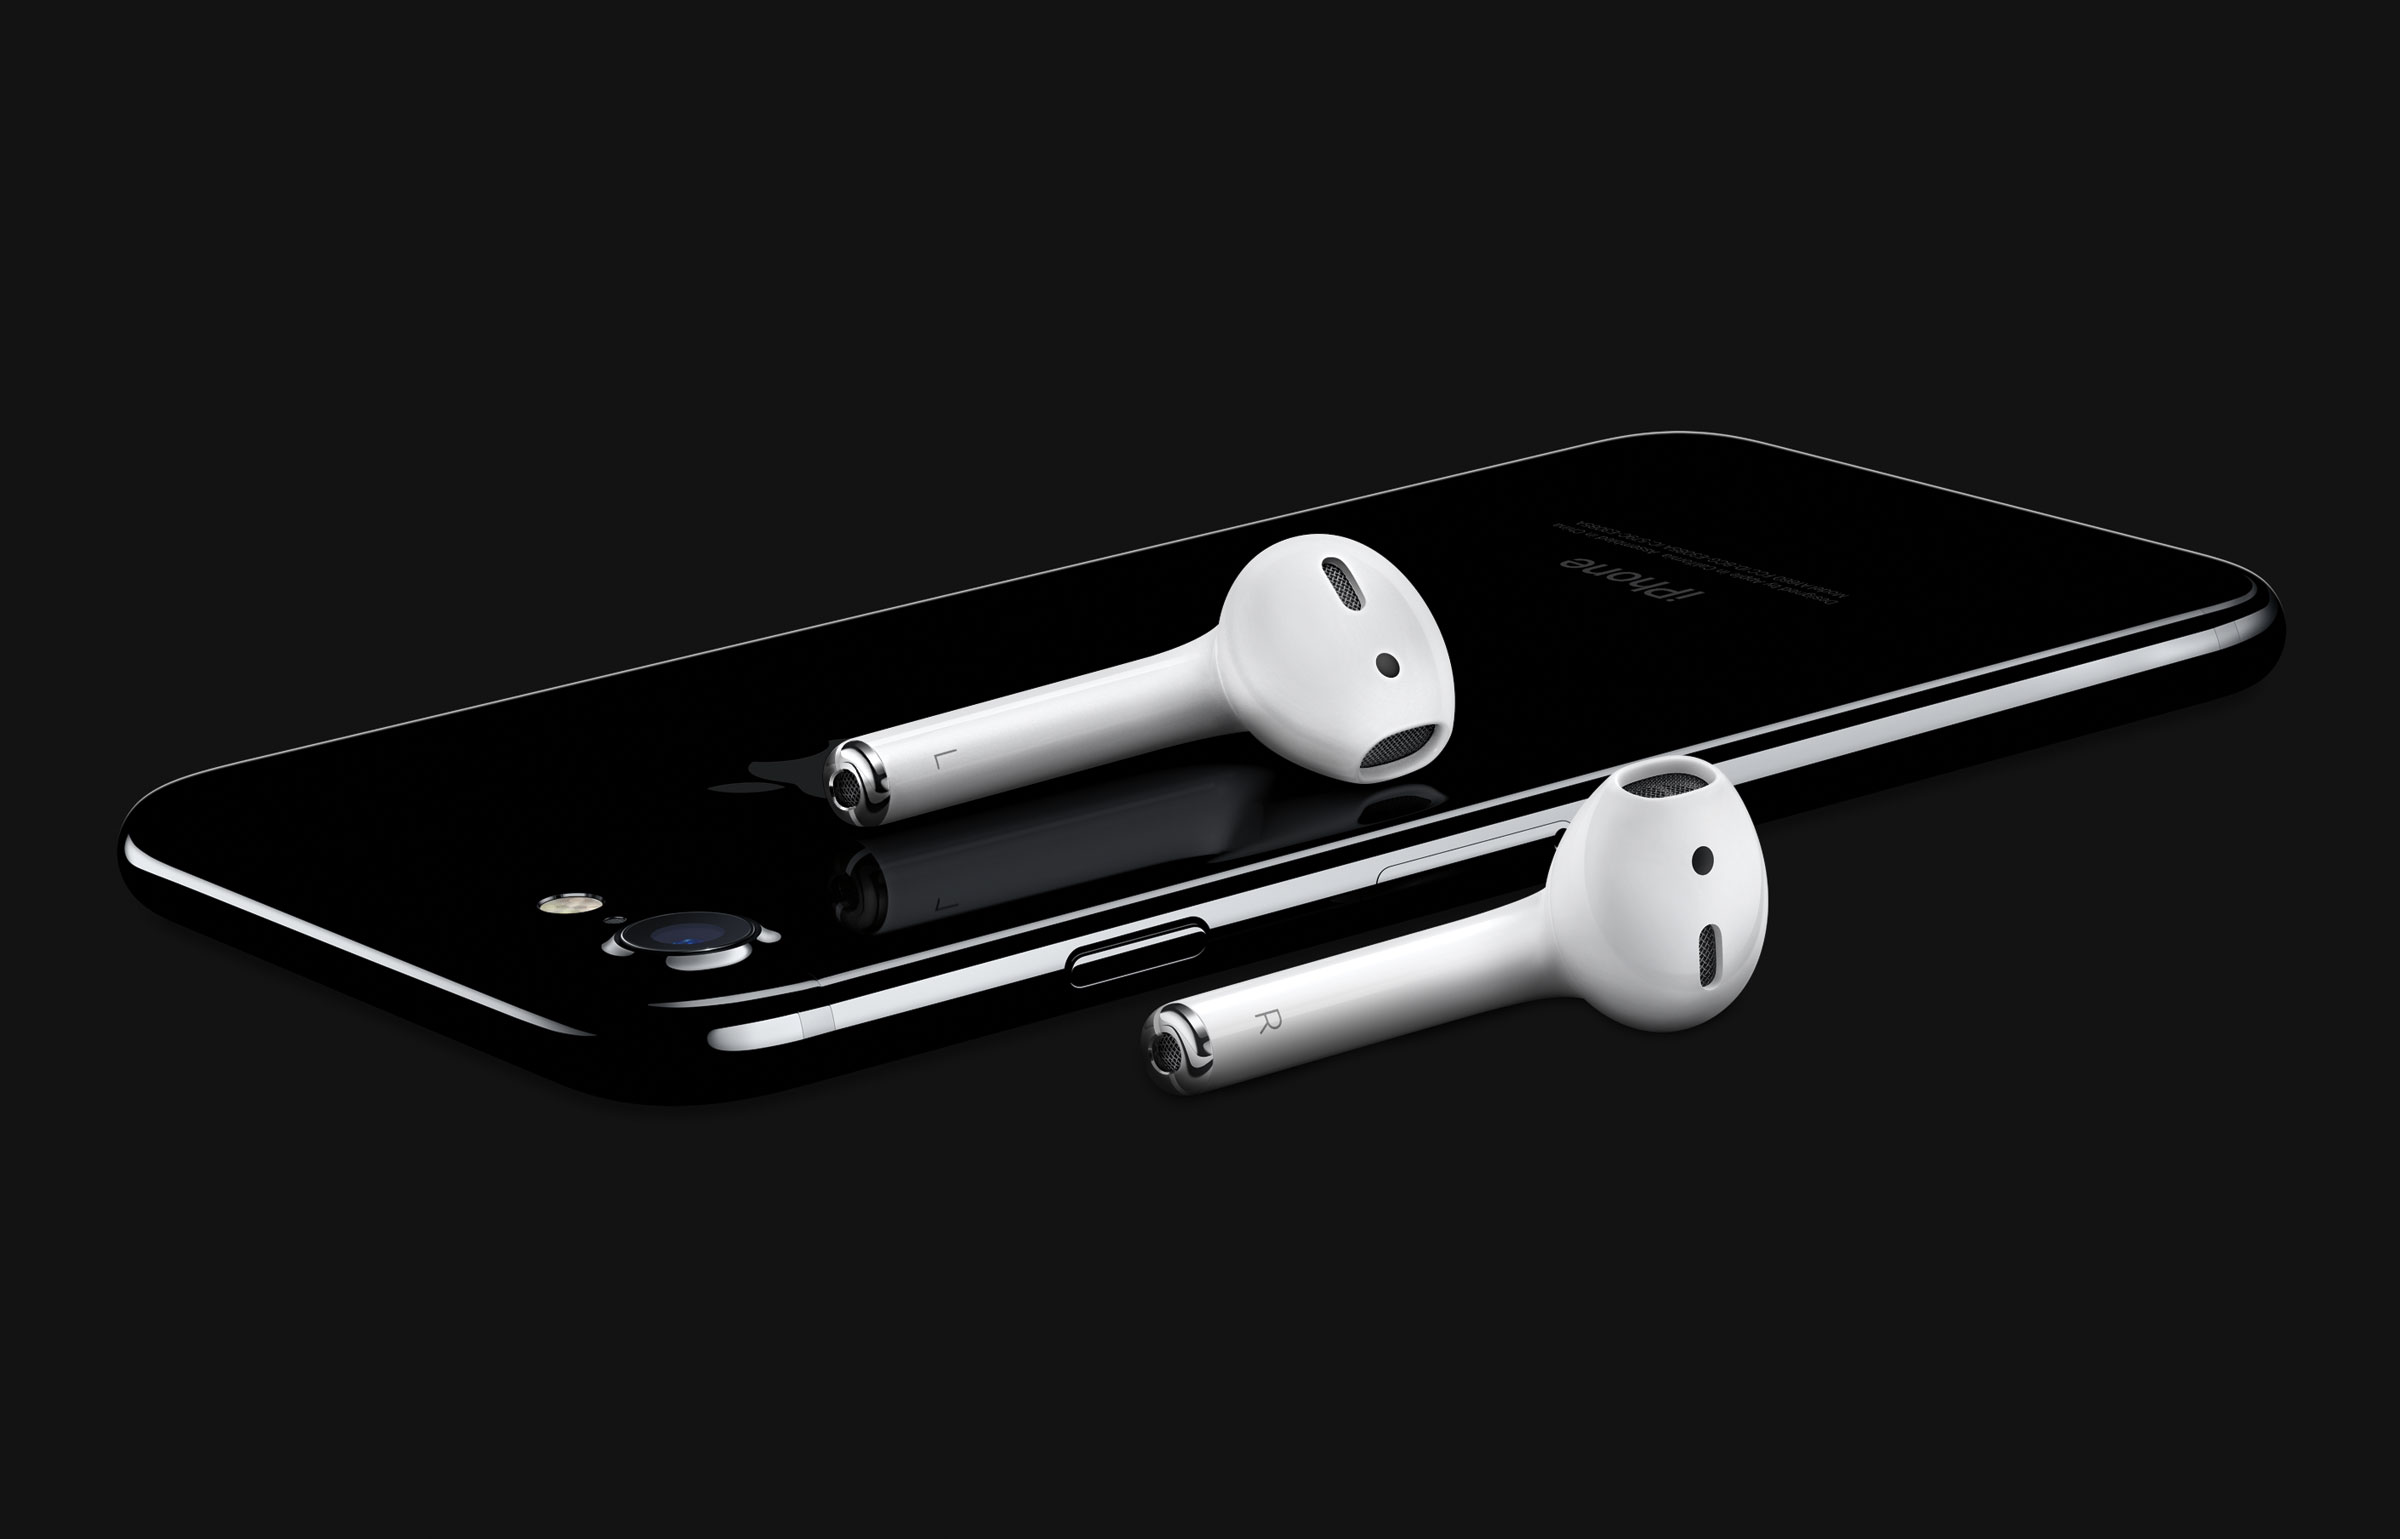 Apple's new AirPods, alongside the iPhone 7